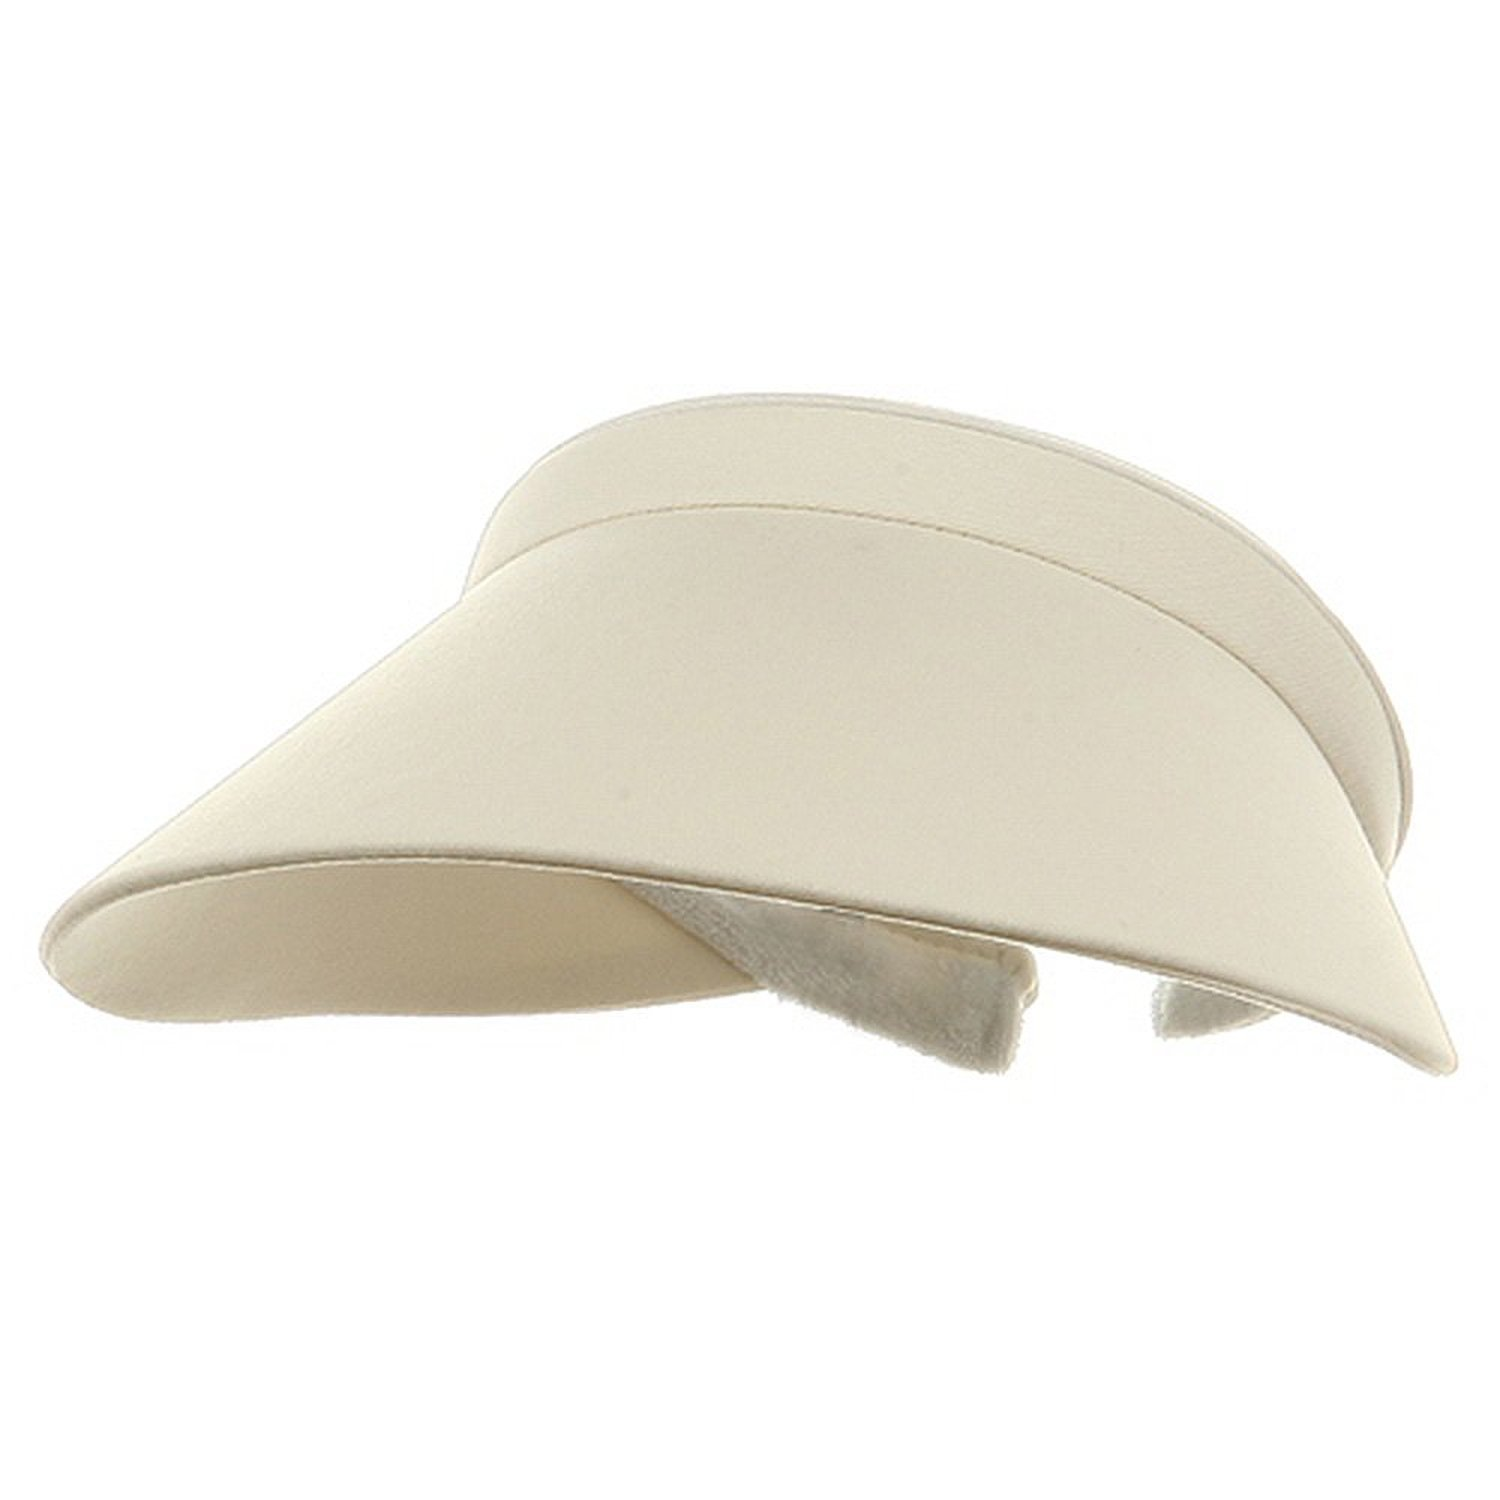 MG Ladies Brushed Cotton Twill Clip-On Visor (Natural)